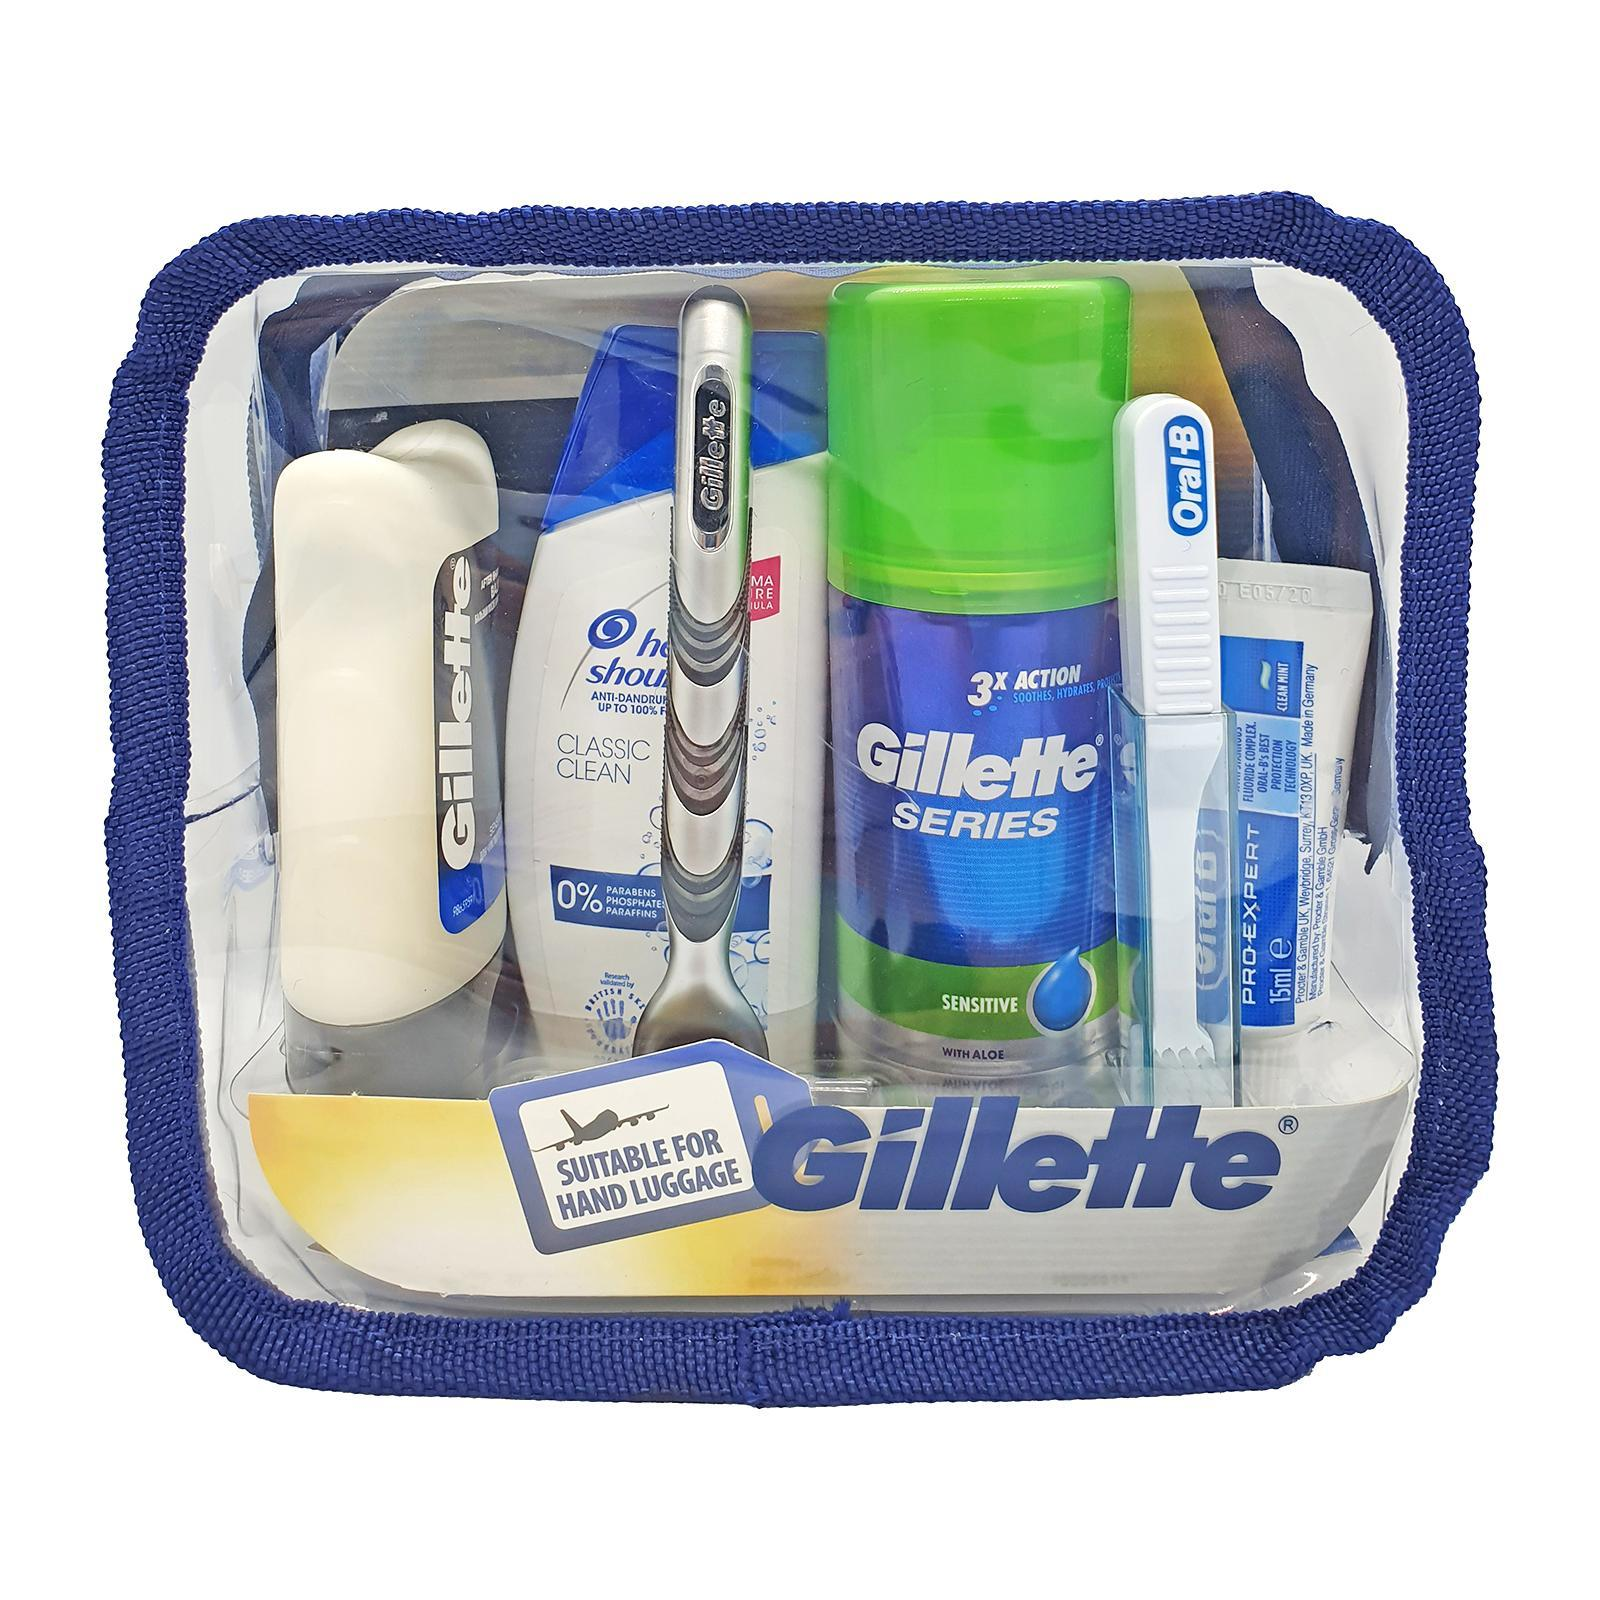 Gillette Travel Set Suitable For Hand Luggage